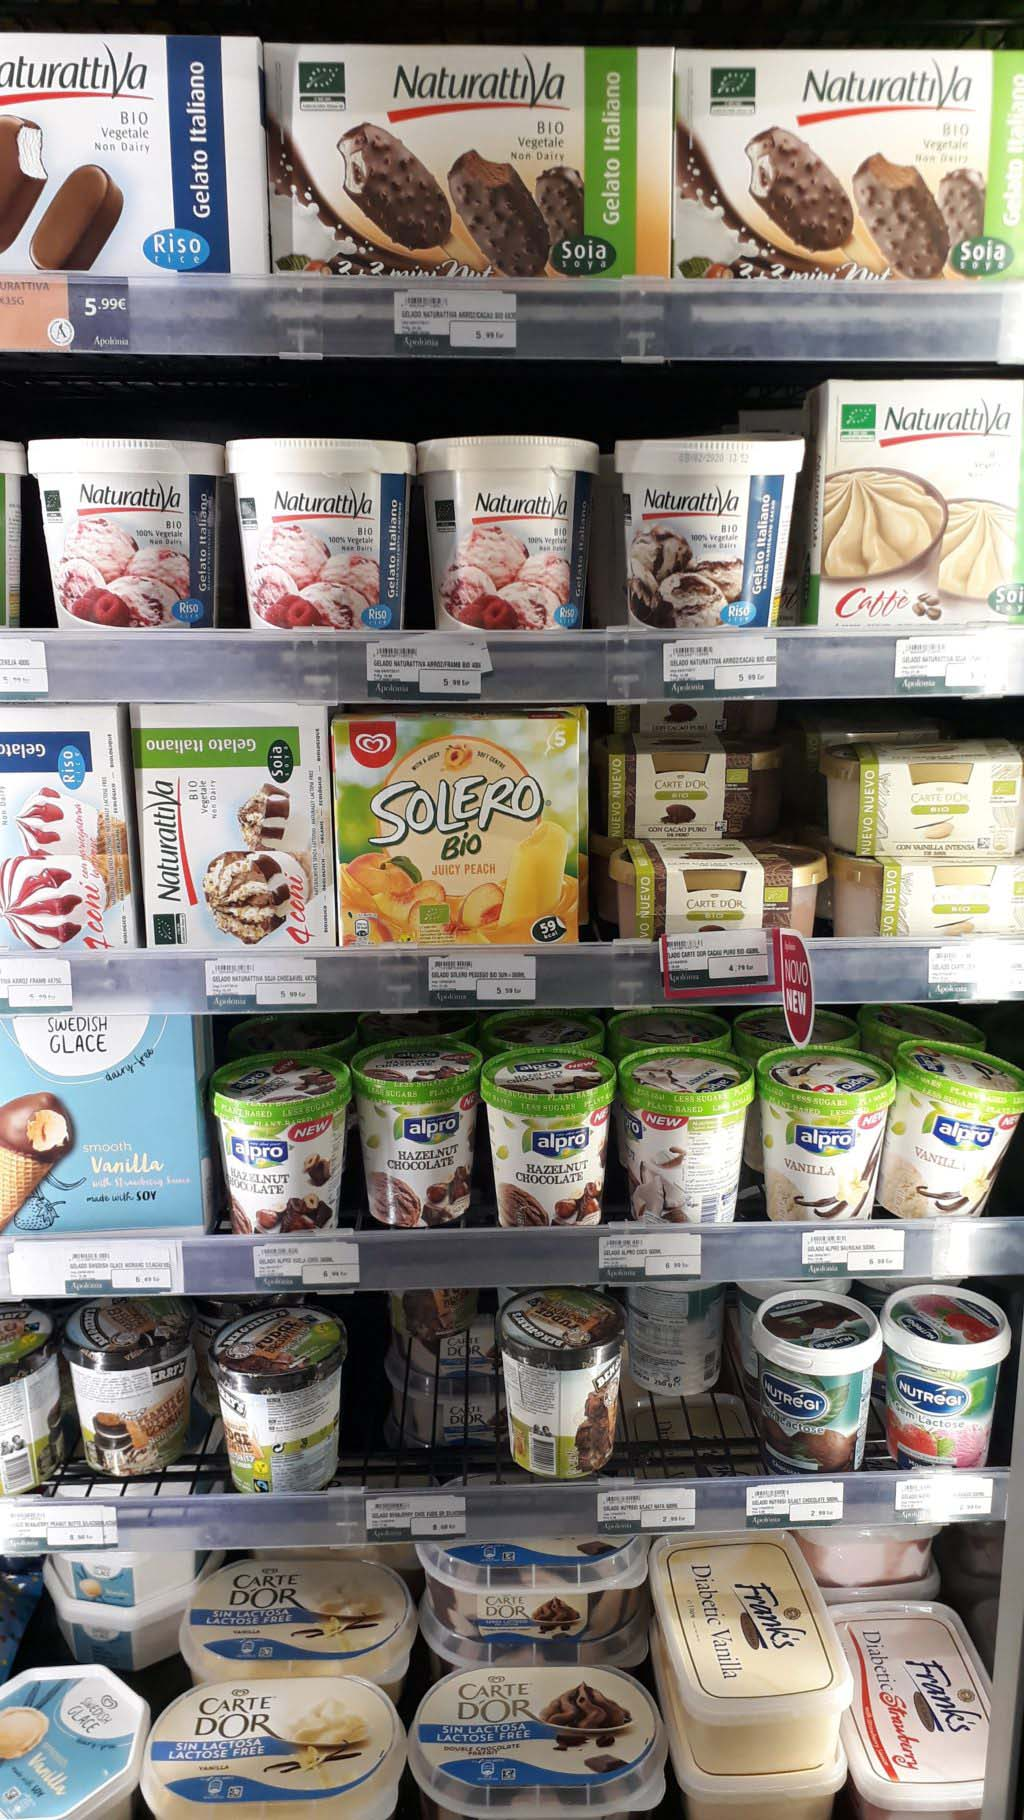 A pretty big selection of vegan ice cream